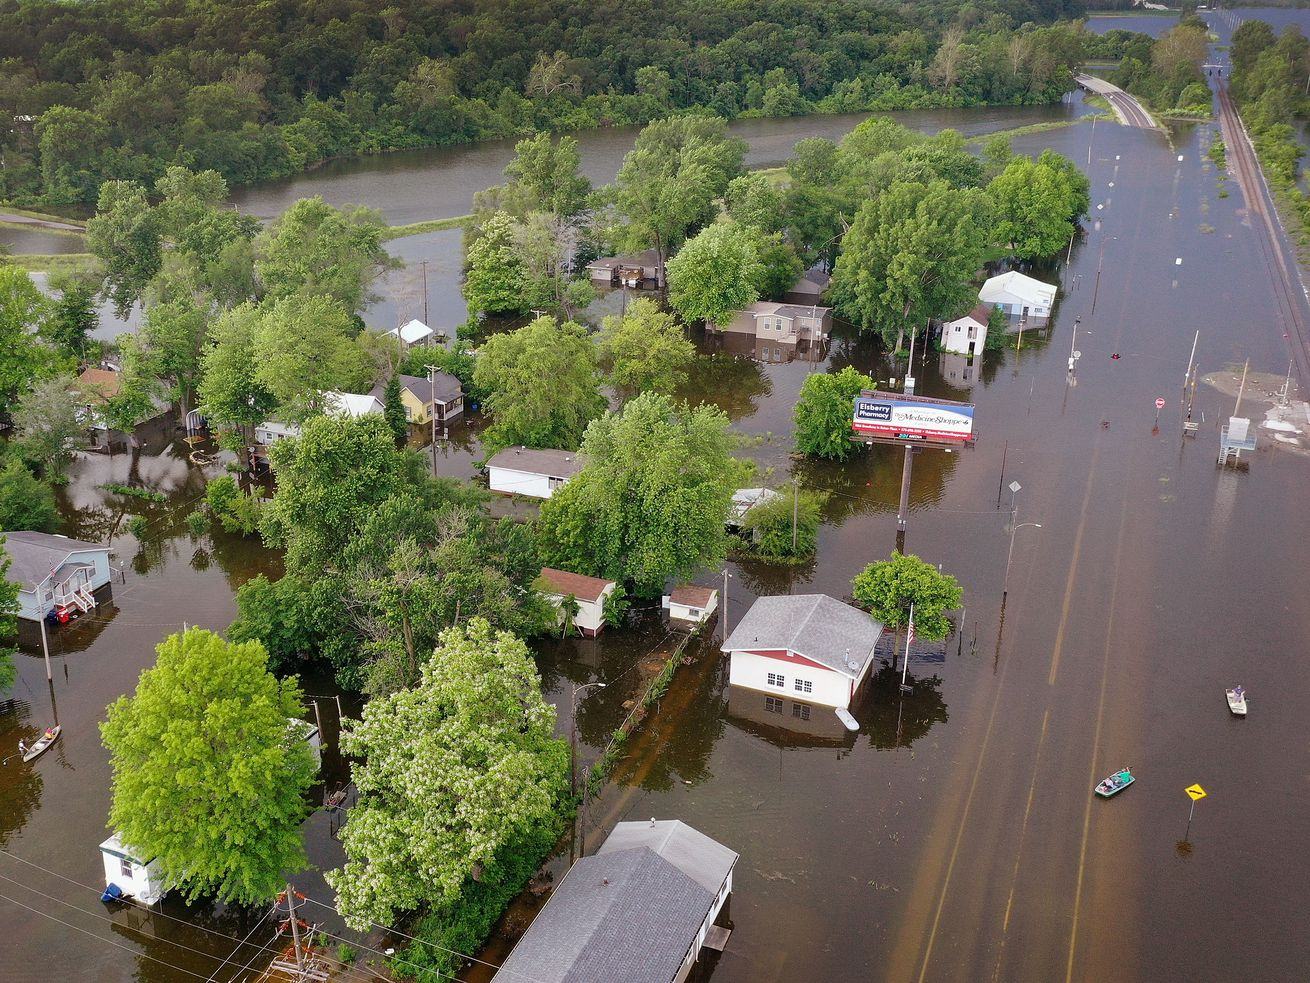 Floodwater from the Mississippi River has overtaken much of the town on June 1, 2019, in Foley, Missouri.